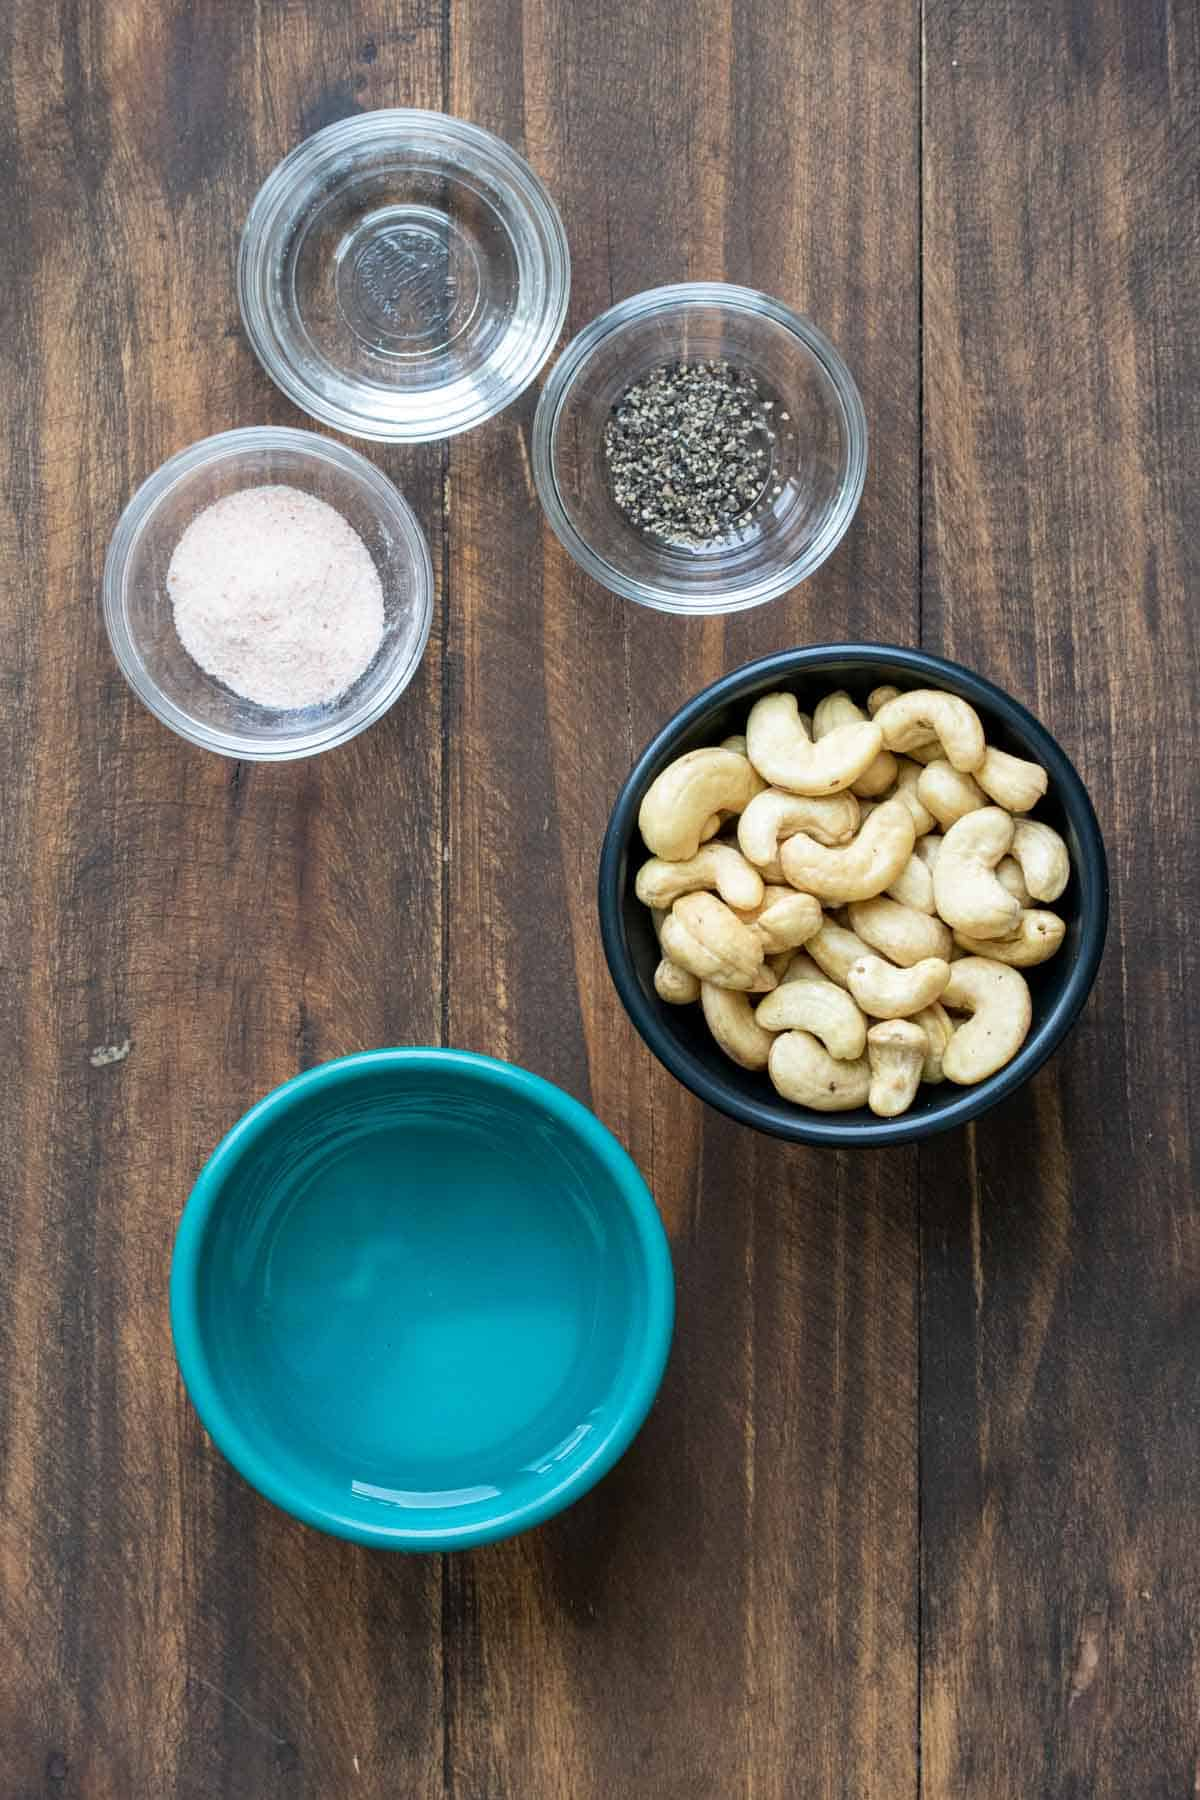 Bowls with cashews, water, salt, pepper and vinegar on a wooden surface